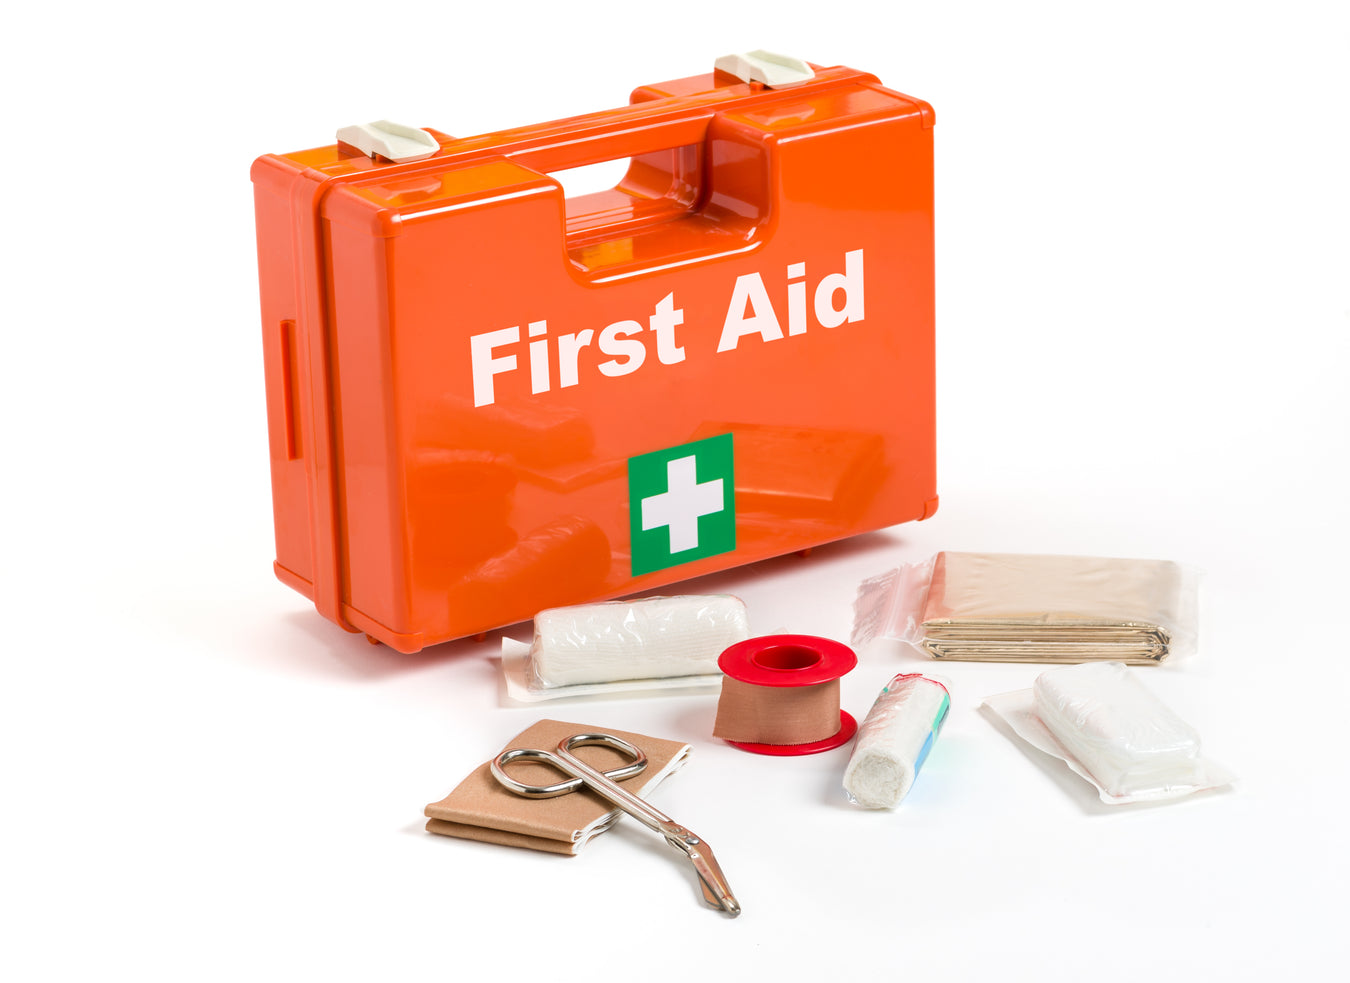 Bright orange first aid kit box with content laid out